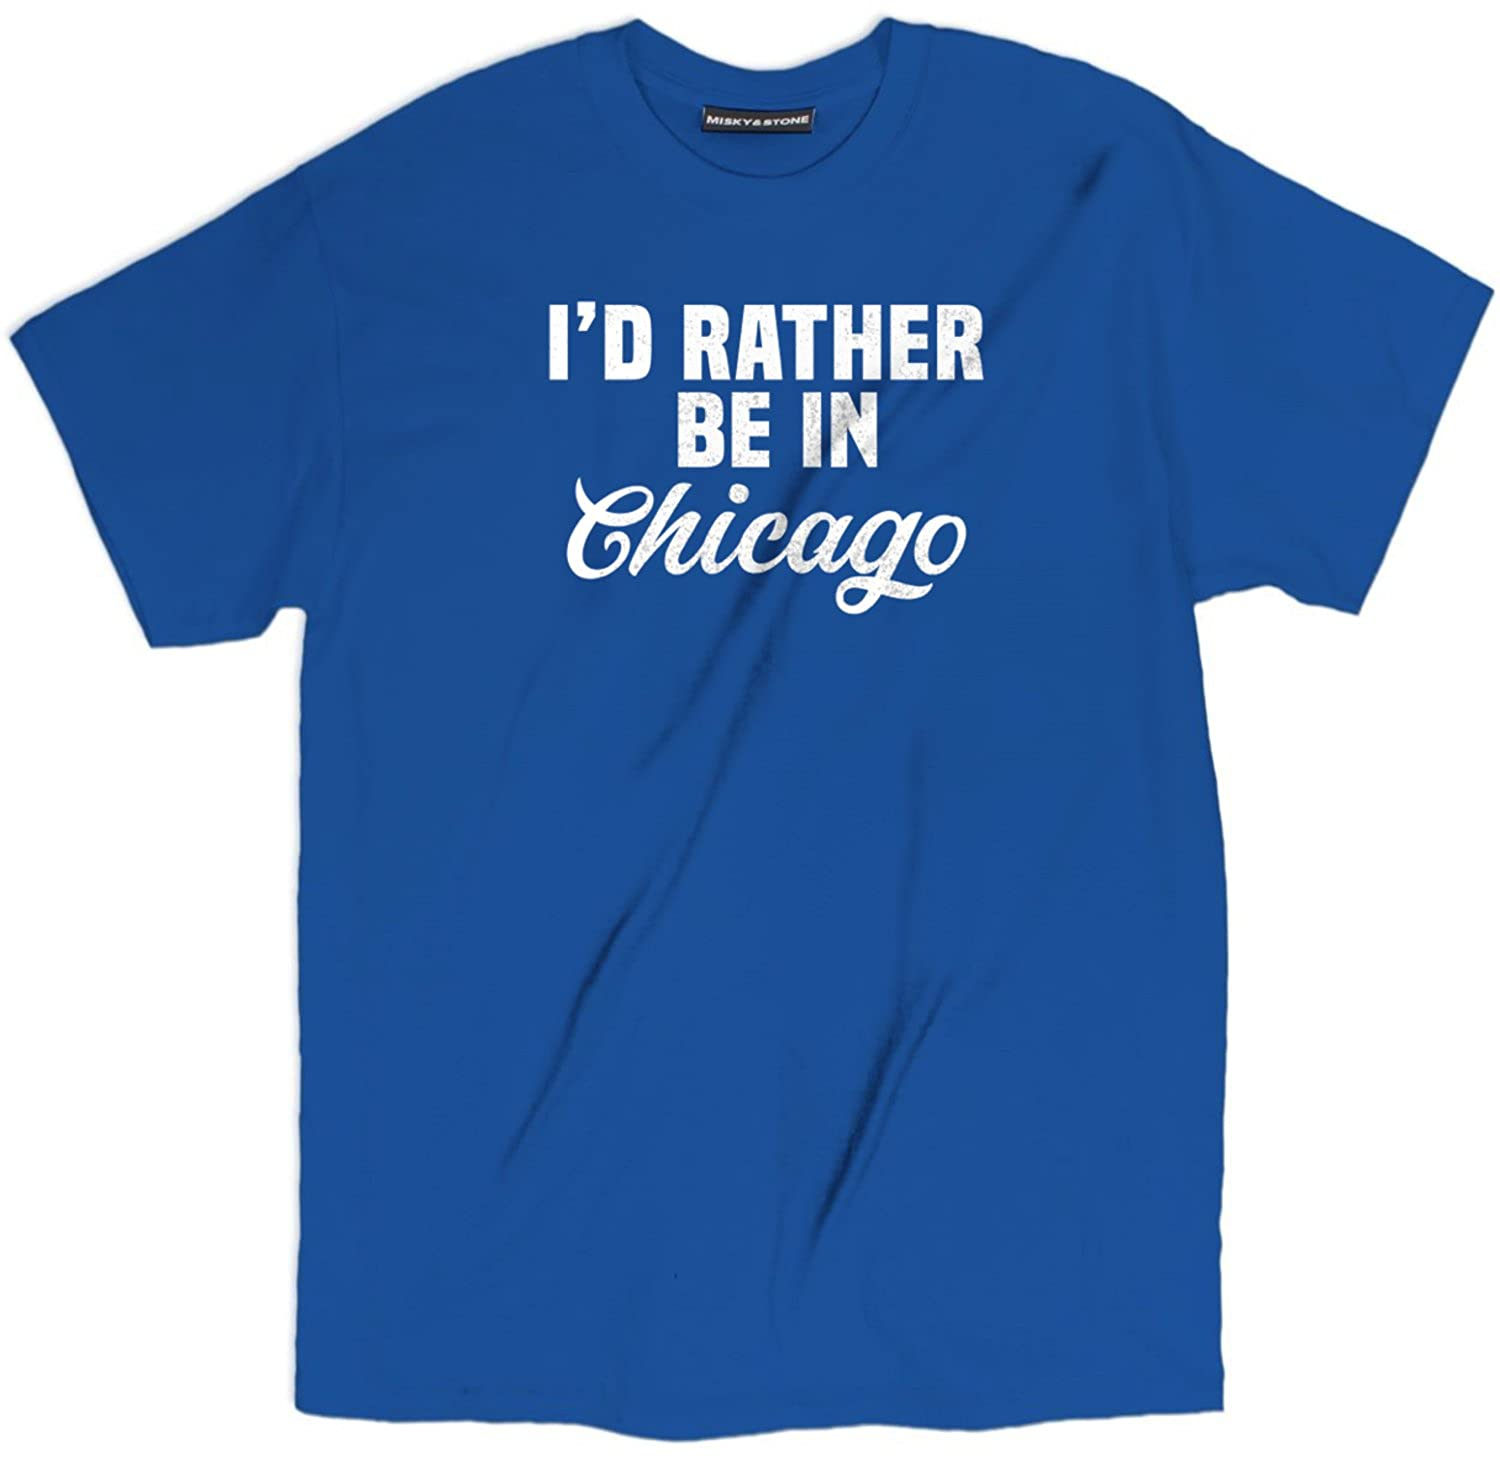 Misky /& Stone Id Rather Be in Chicago T Shirt Funny Graphic Printed Tee S-3xl